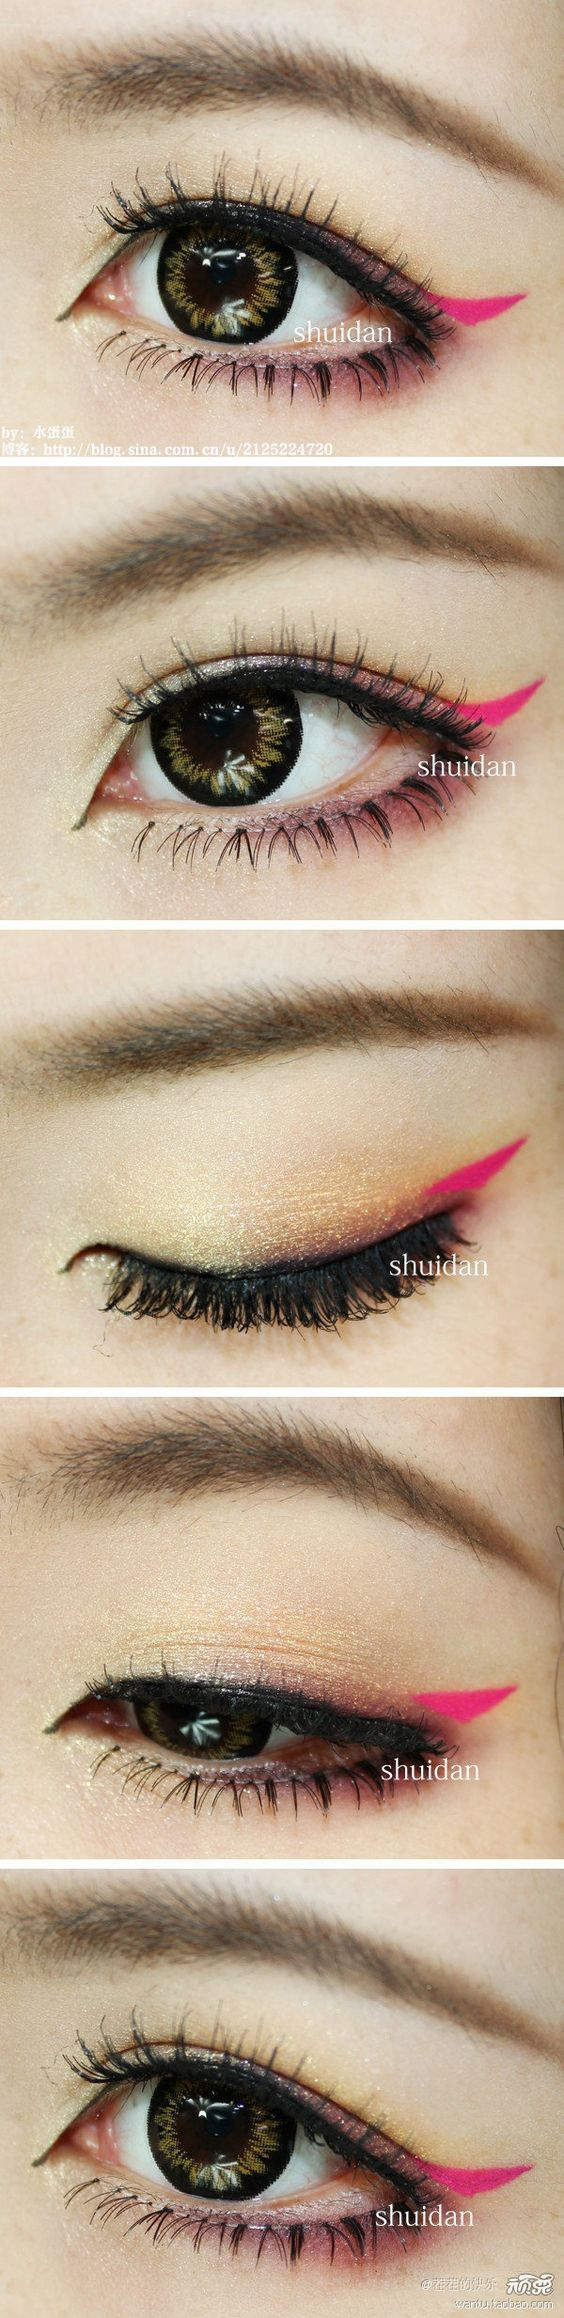 Korean ulzzang makeup tutorial featuring NEO Celeb Brown circle contacts - http://www.eyecandys.com/neo-celeb-brown/: